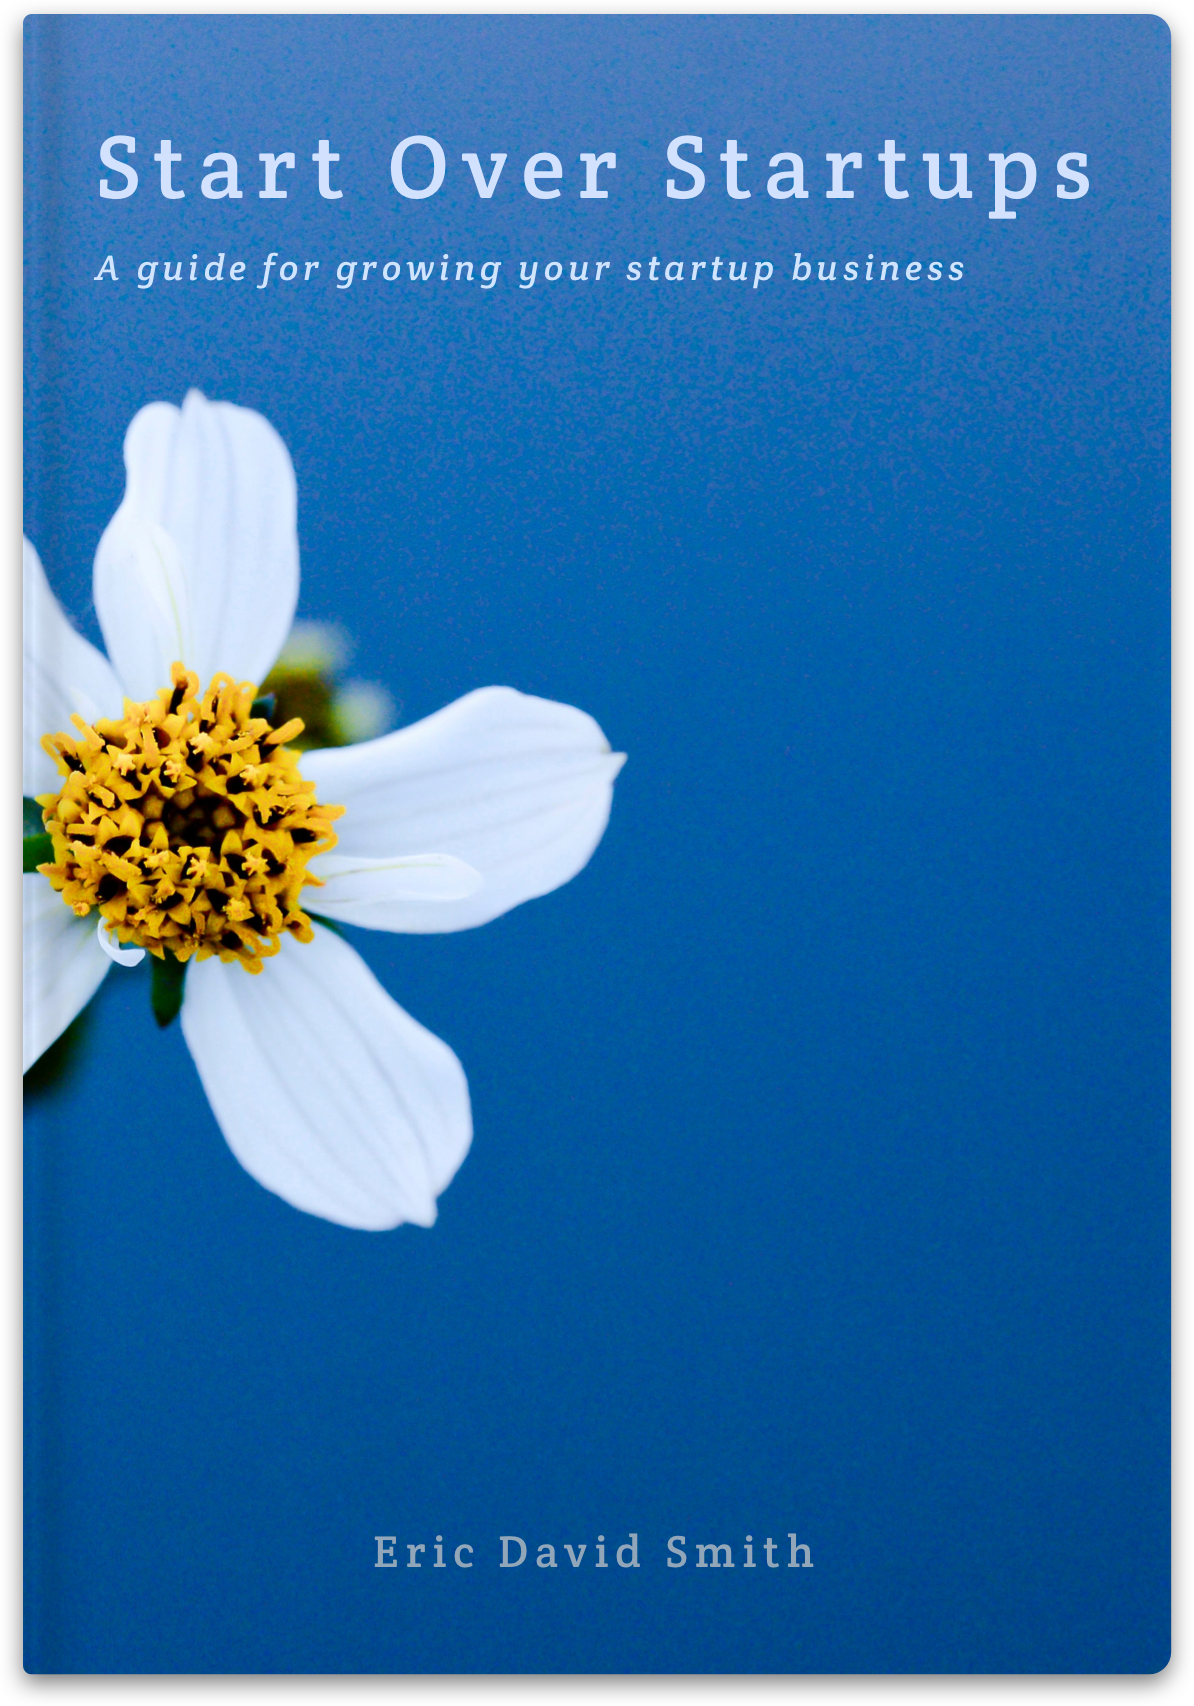 start-over-startups-cover-image-1